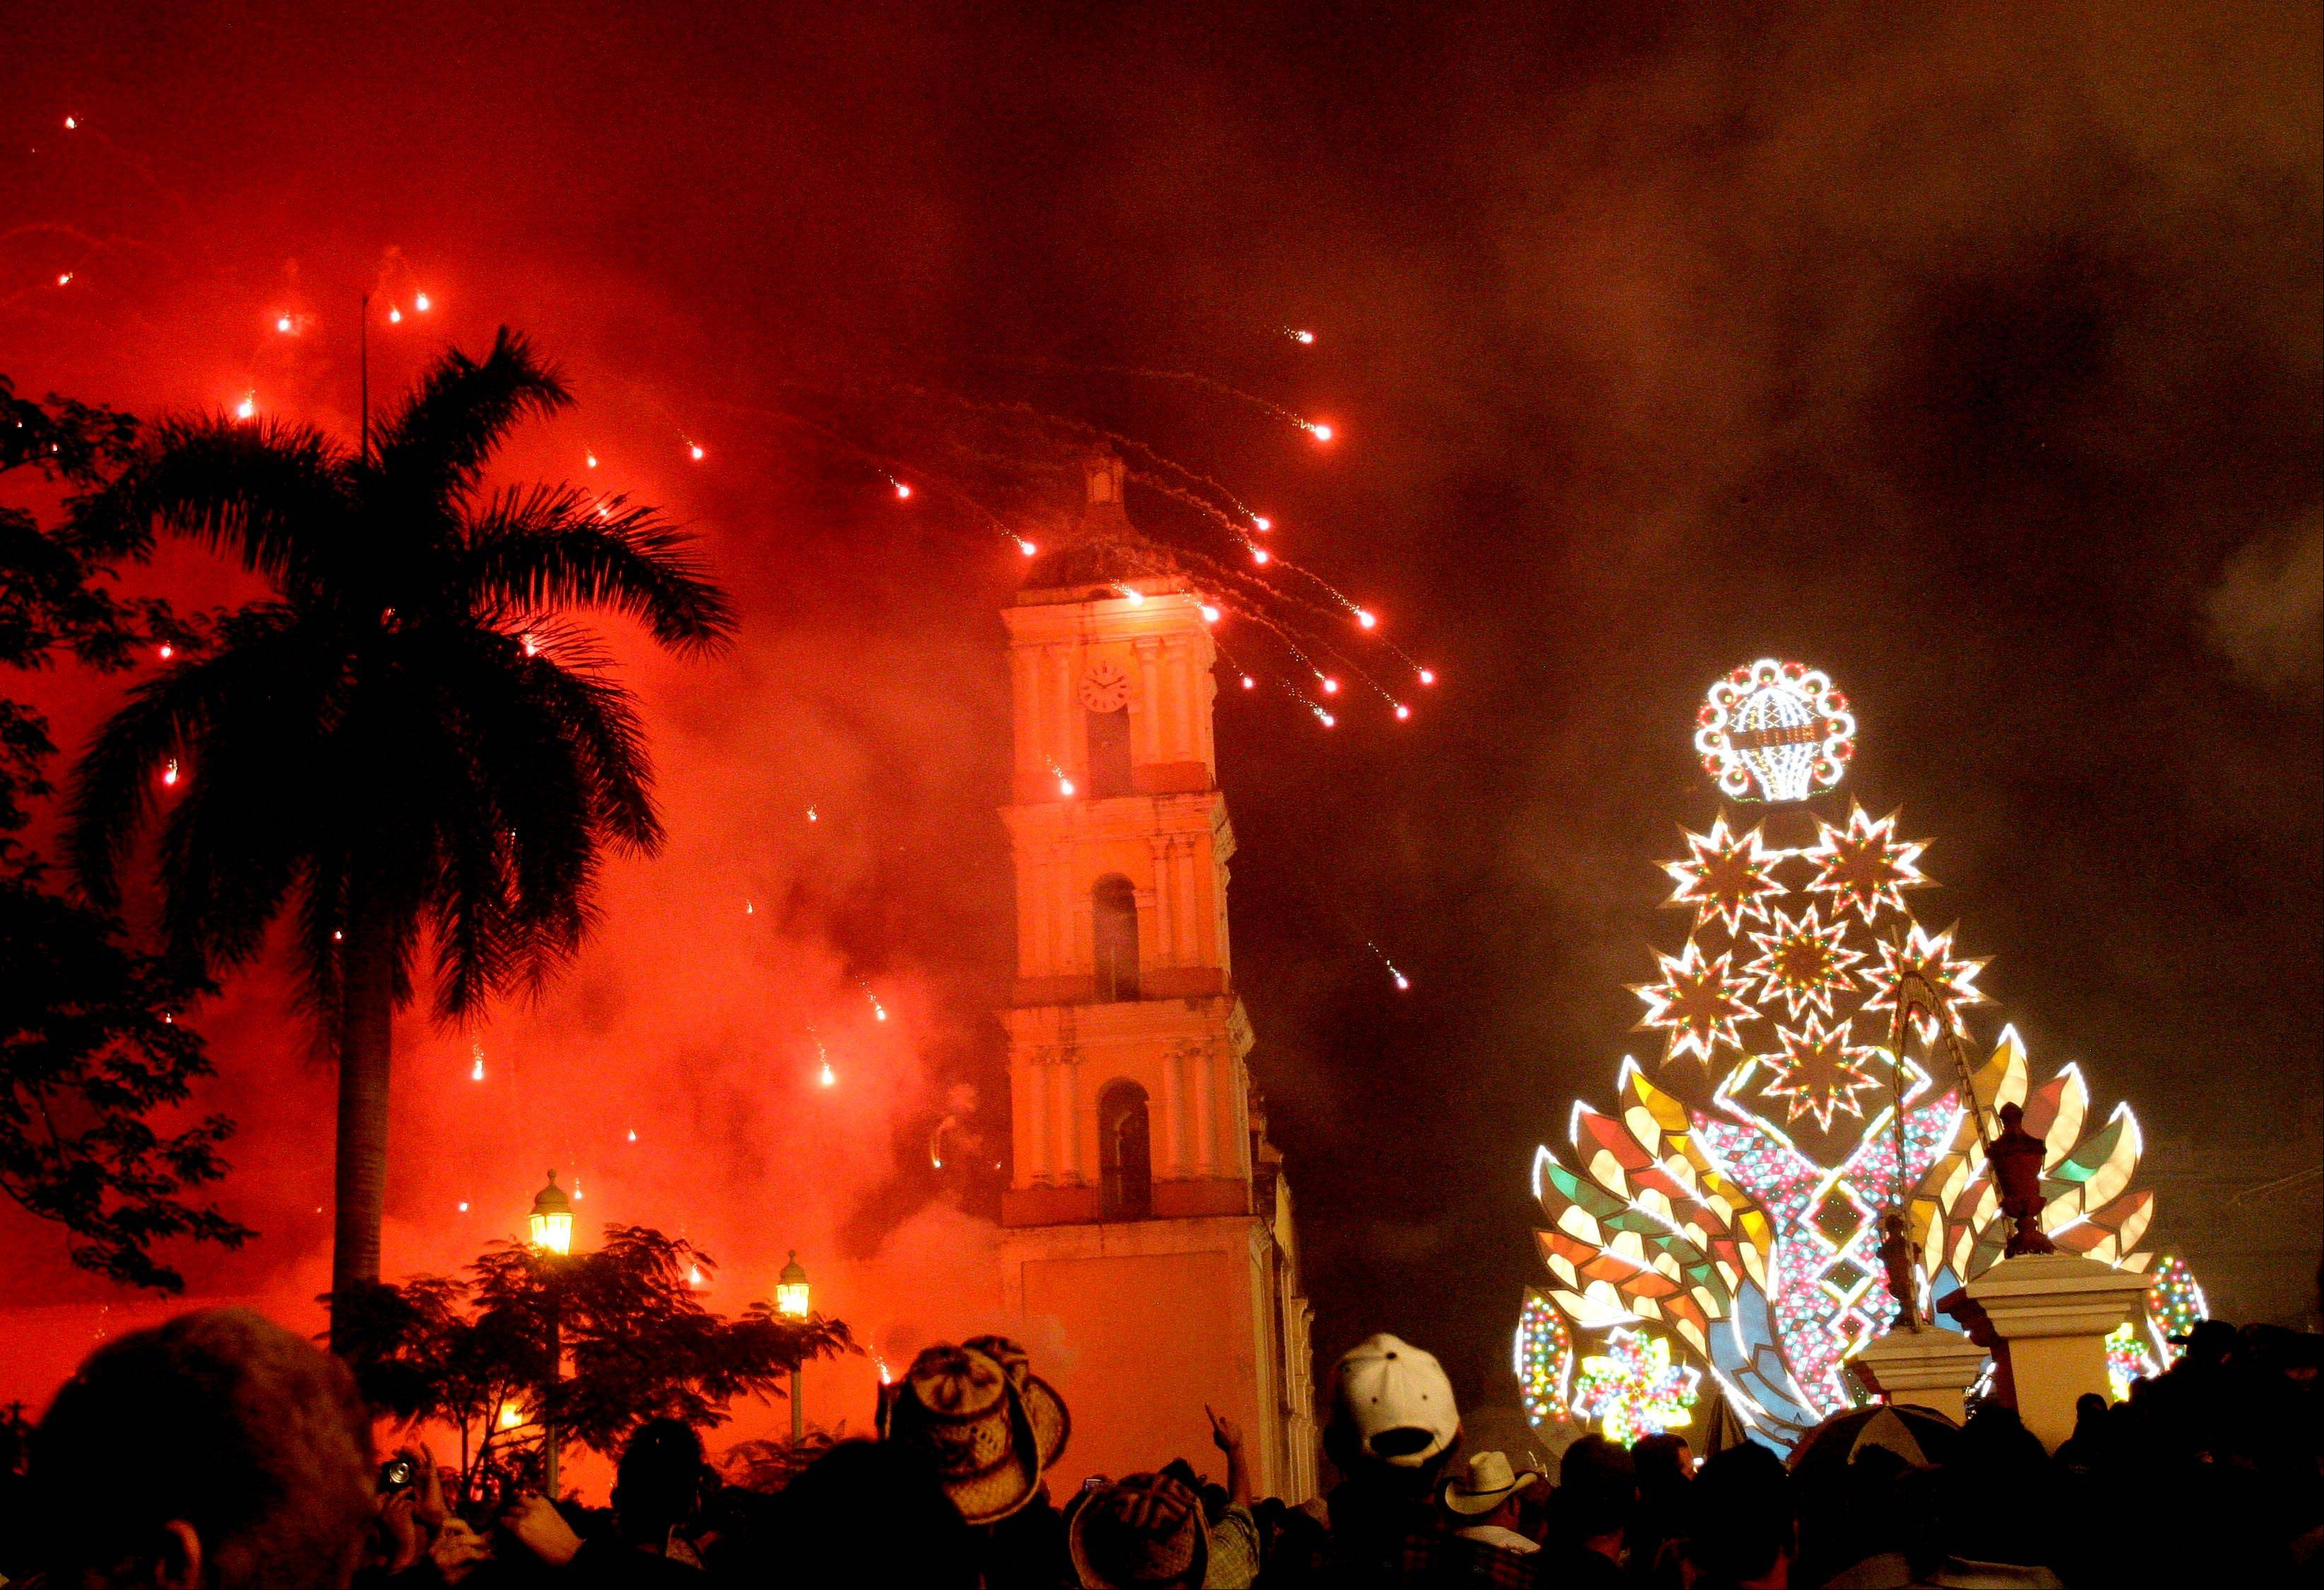 "Fireworks light up the church during a ""Parranda"" celebrating Christmas in the village of Remedios, Cuba, late Monday, Dec. 24, 2012. Remedios' parrandas evolved from a priest's attempt to attract residents to his Catholic church's Christmas Mass, and with time, it converted into the town's street party where residents compete in firework and Christmas displays."